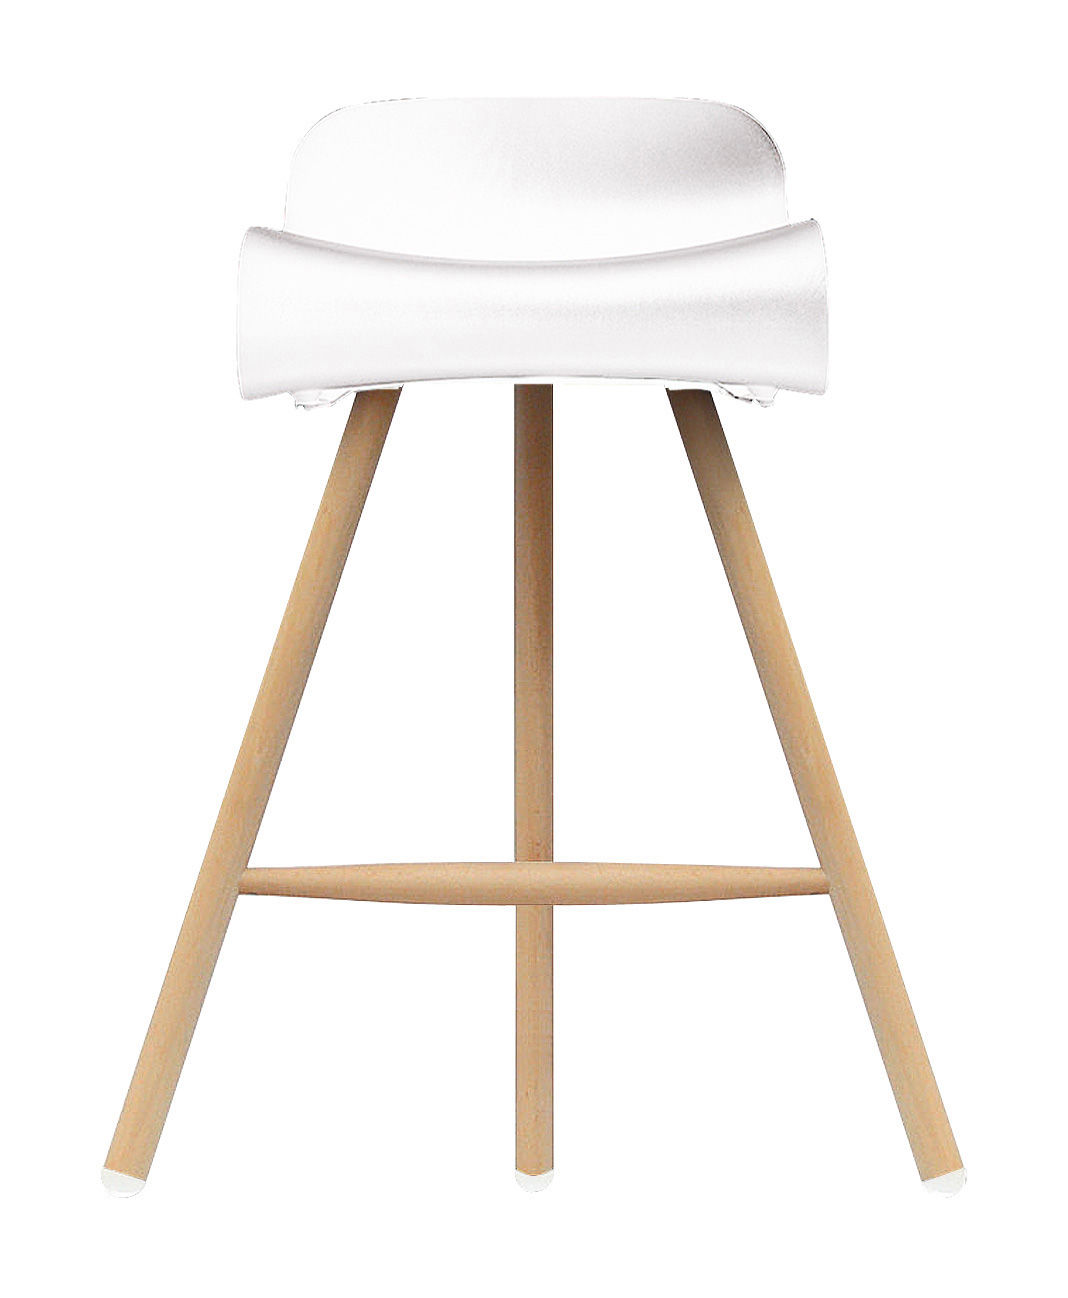 Very Impressive portraiture of  Bar stools > BCN Wood Bar stool H 66 cm Plastic & wood legs by with #946A37 color and 1068x1298 pixels